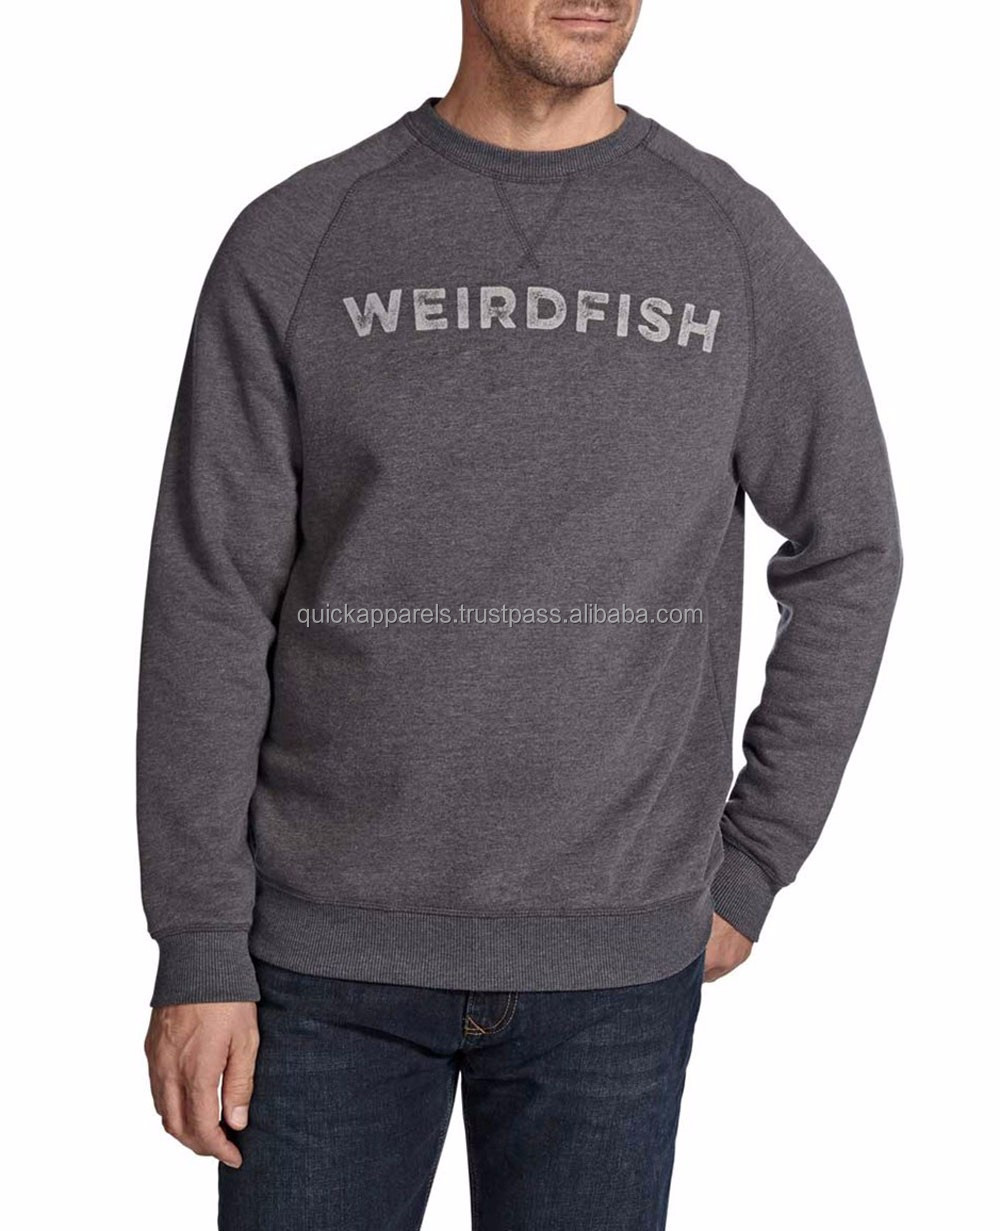 Crewneck sweatshirts cheap breeze clothing for Custom shirts and hoodies cheap